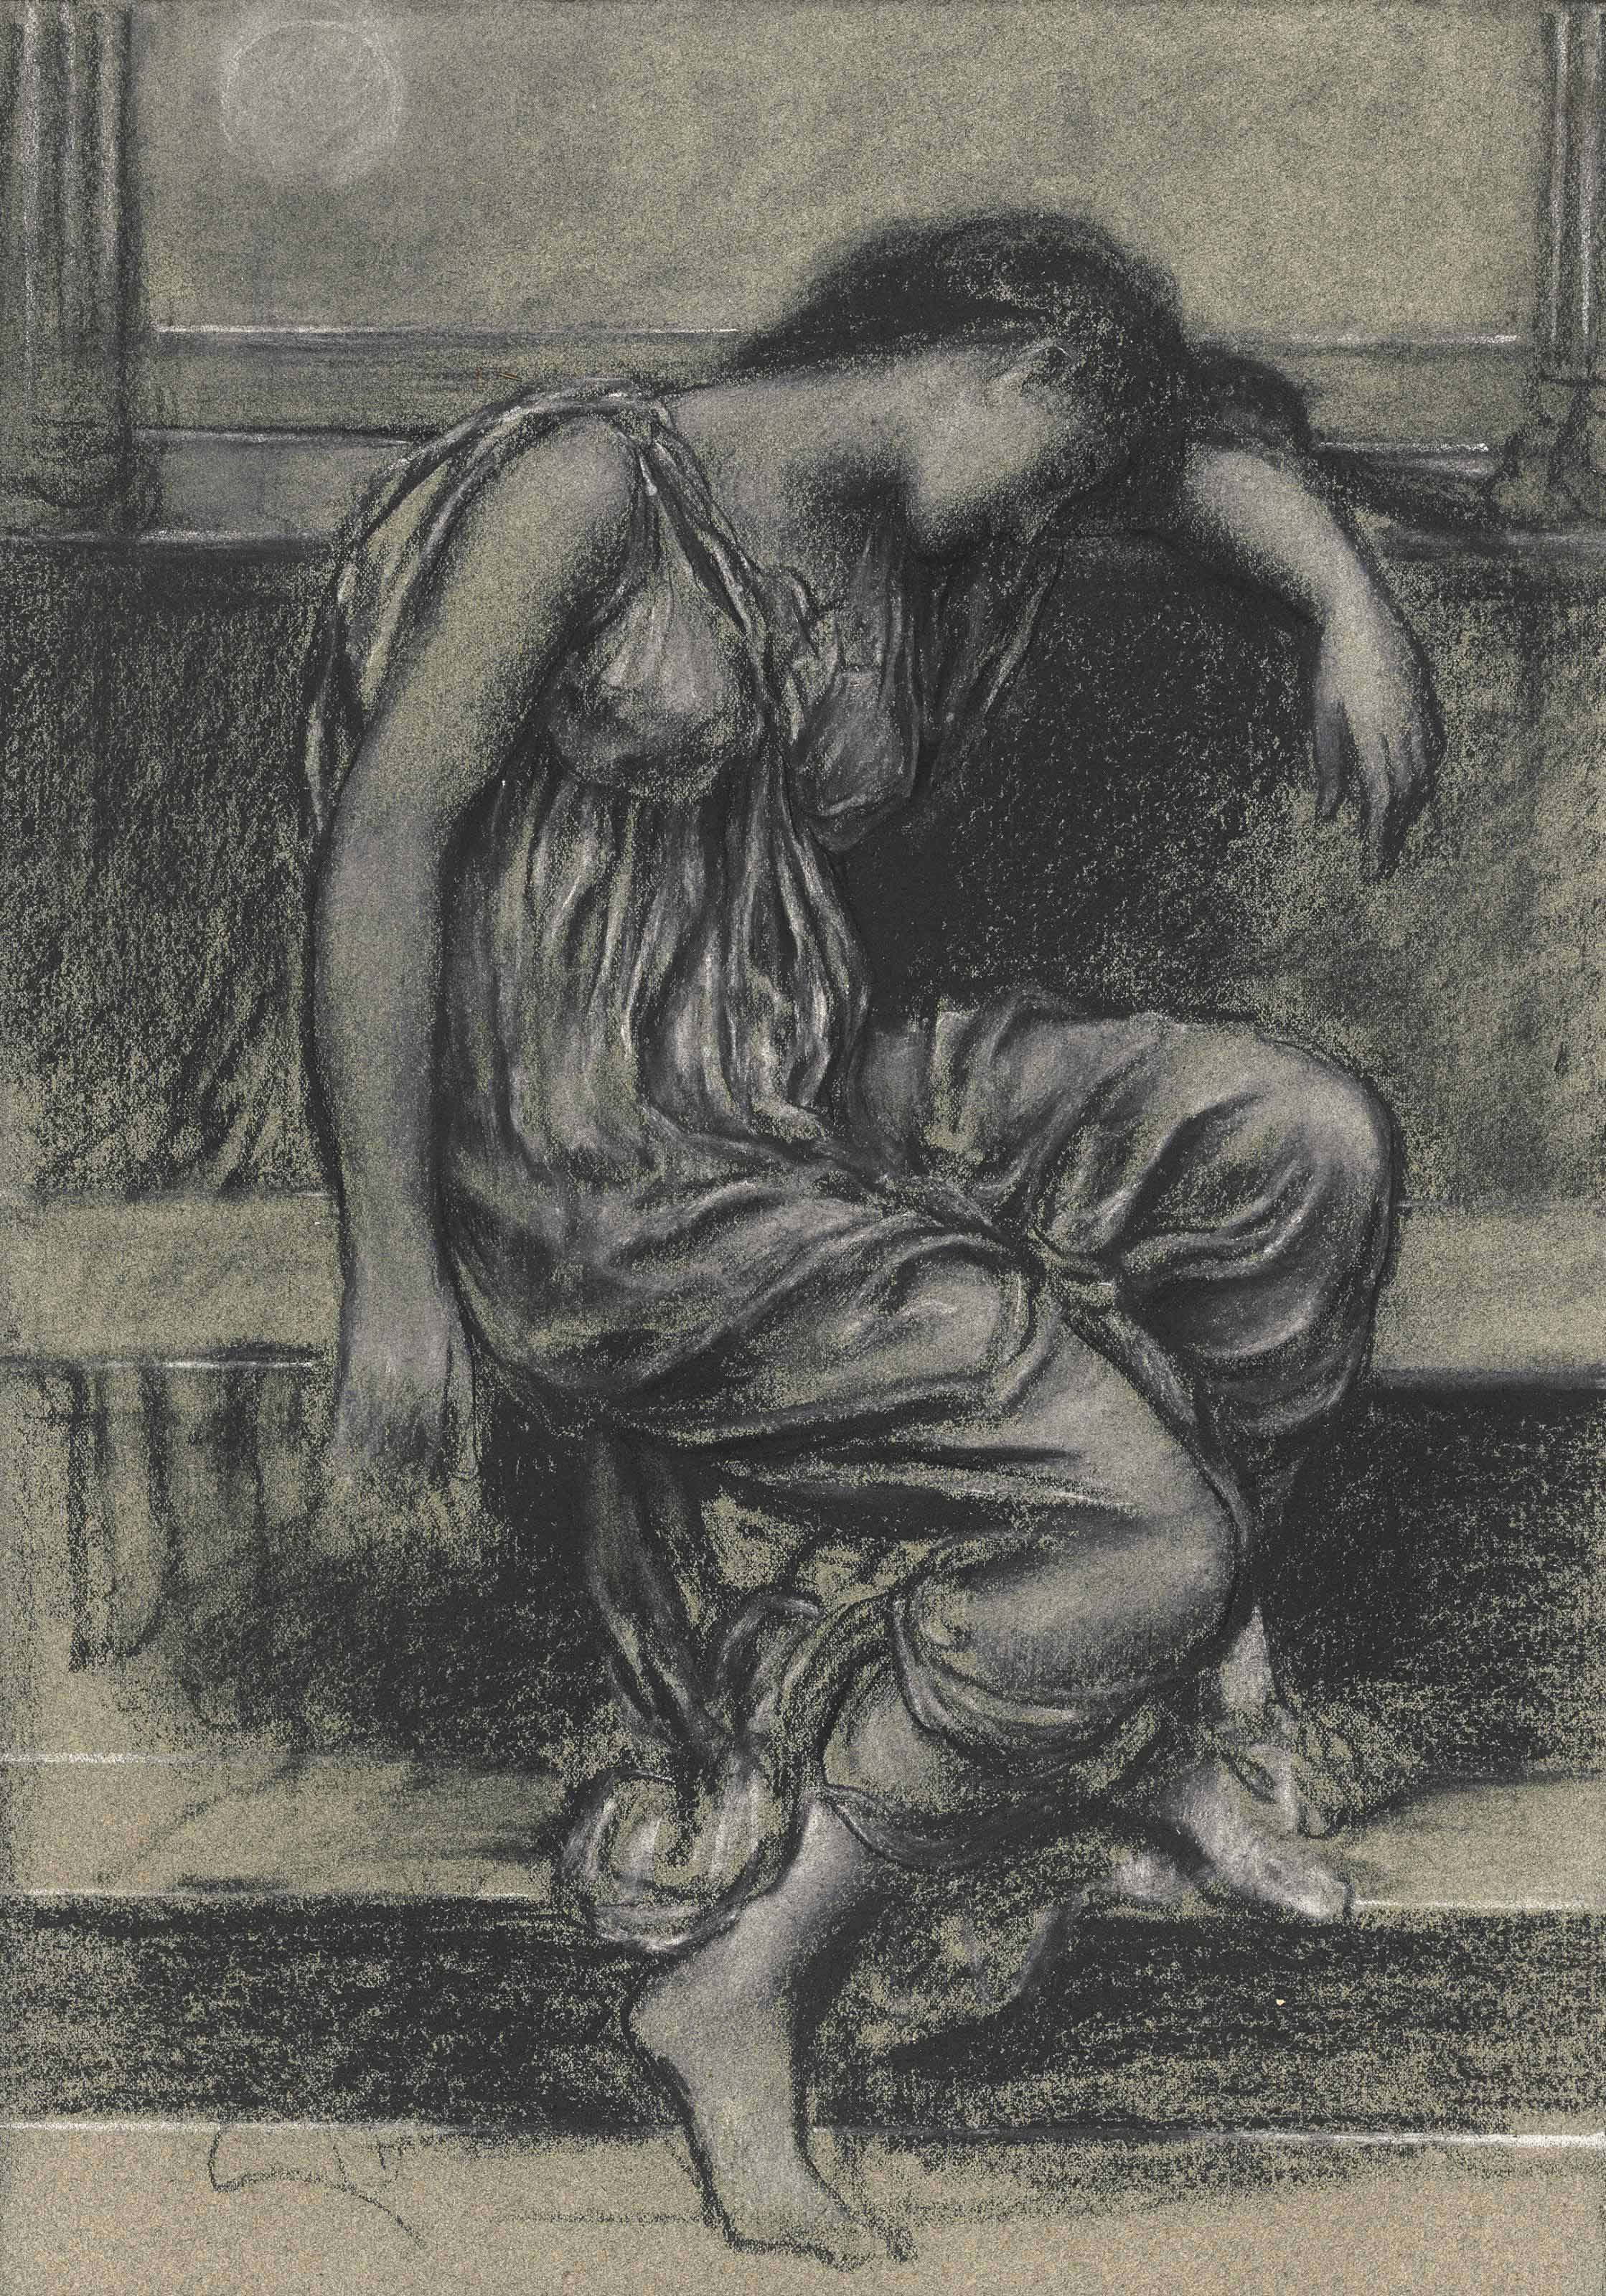 Study for 'In Memoriam'